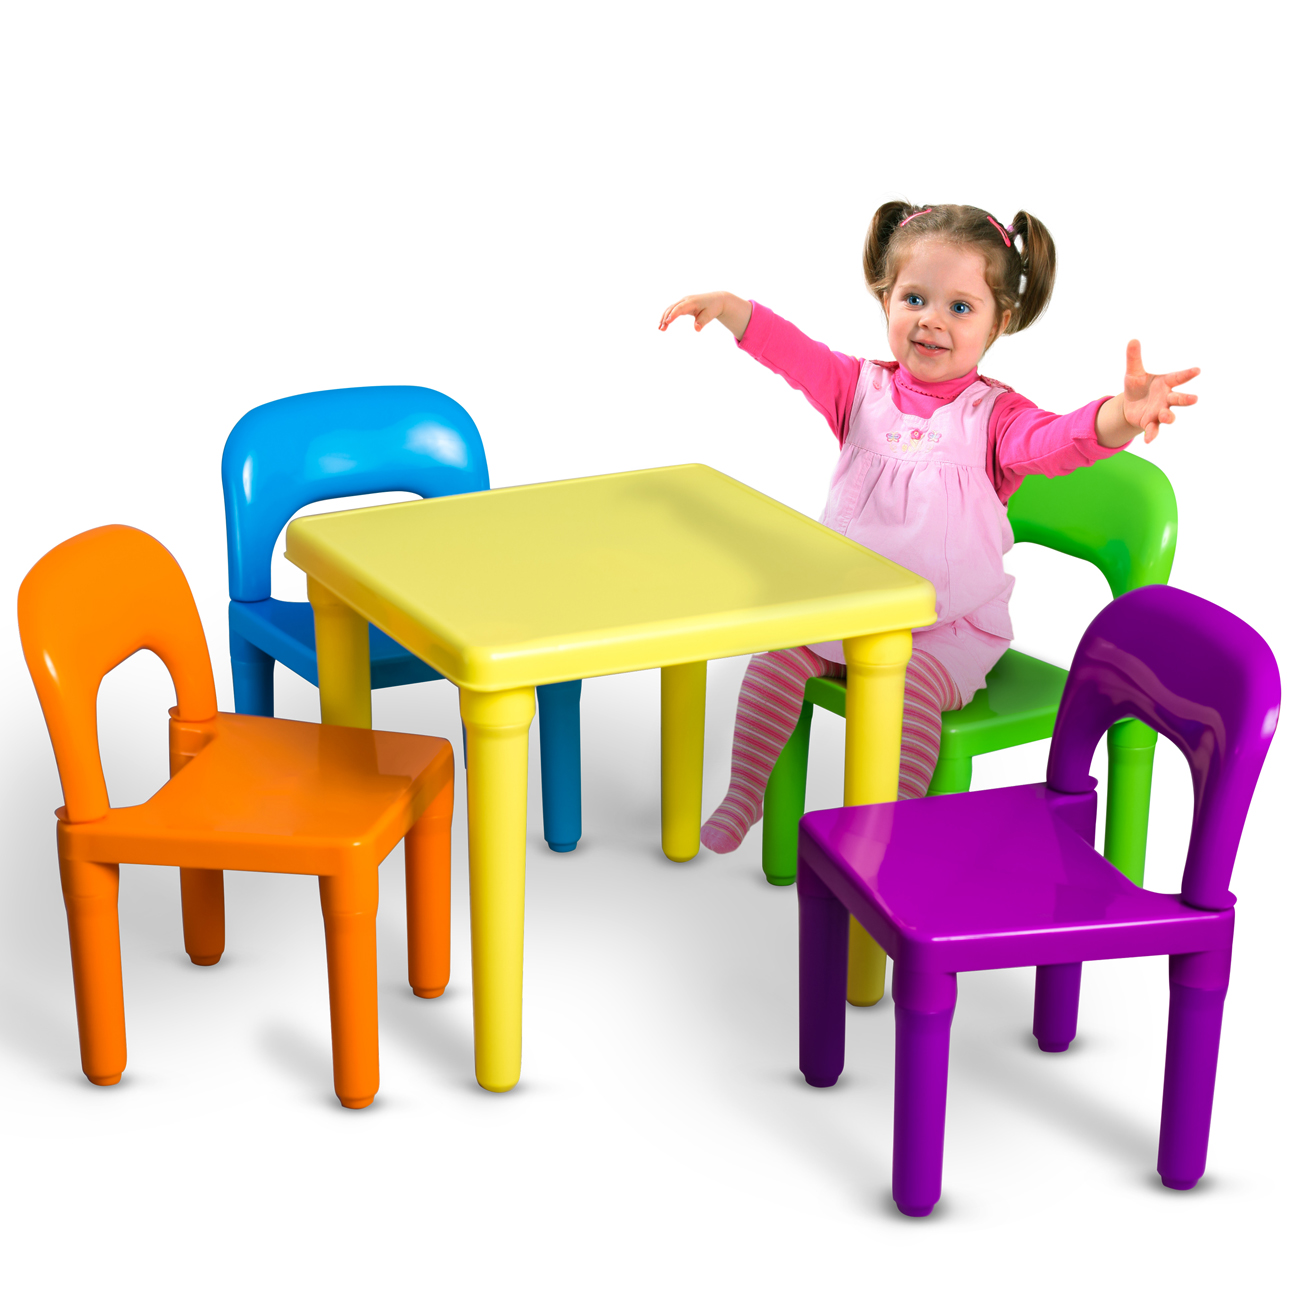 Free Tables And Chairs: Kids Table And Chairs Play Set Toddler Child Toy Activity